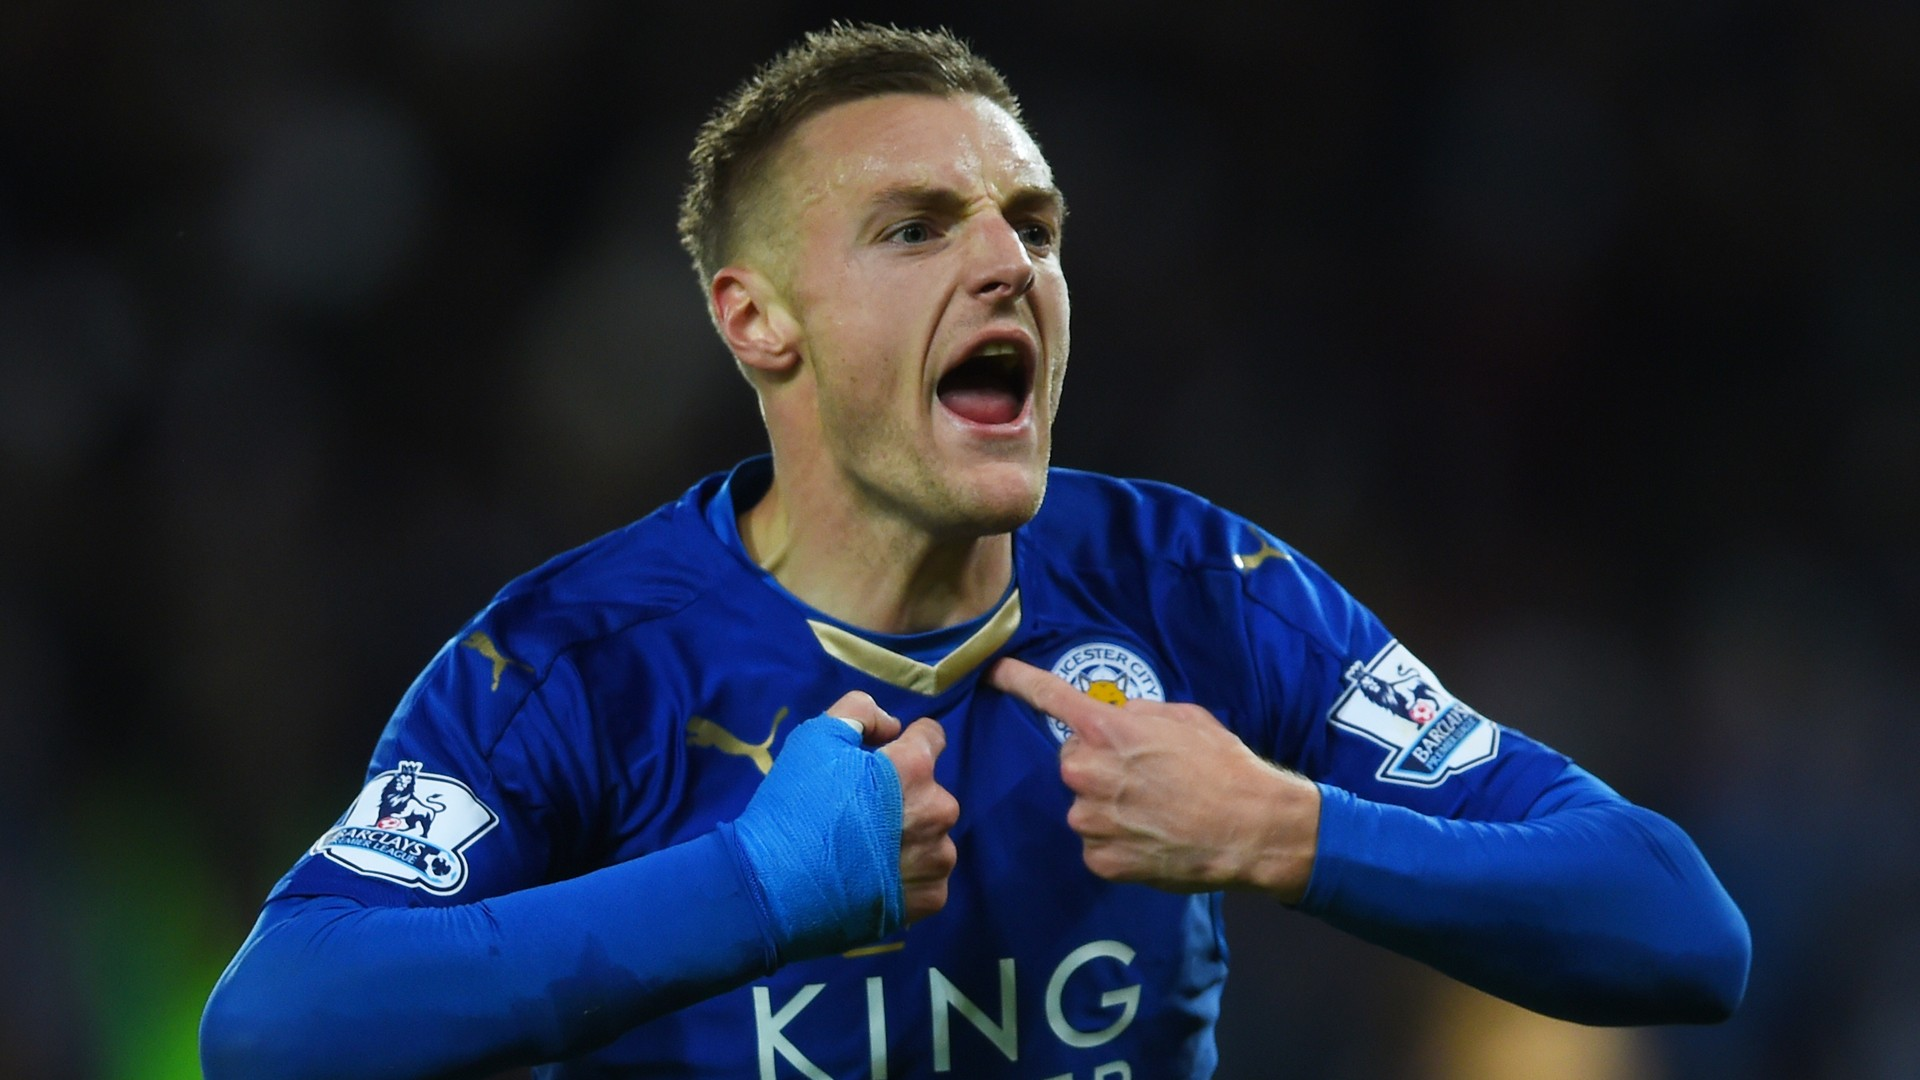 L'attaccante del Leicester Jamie Vardy